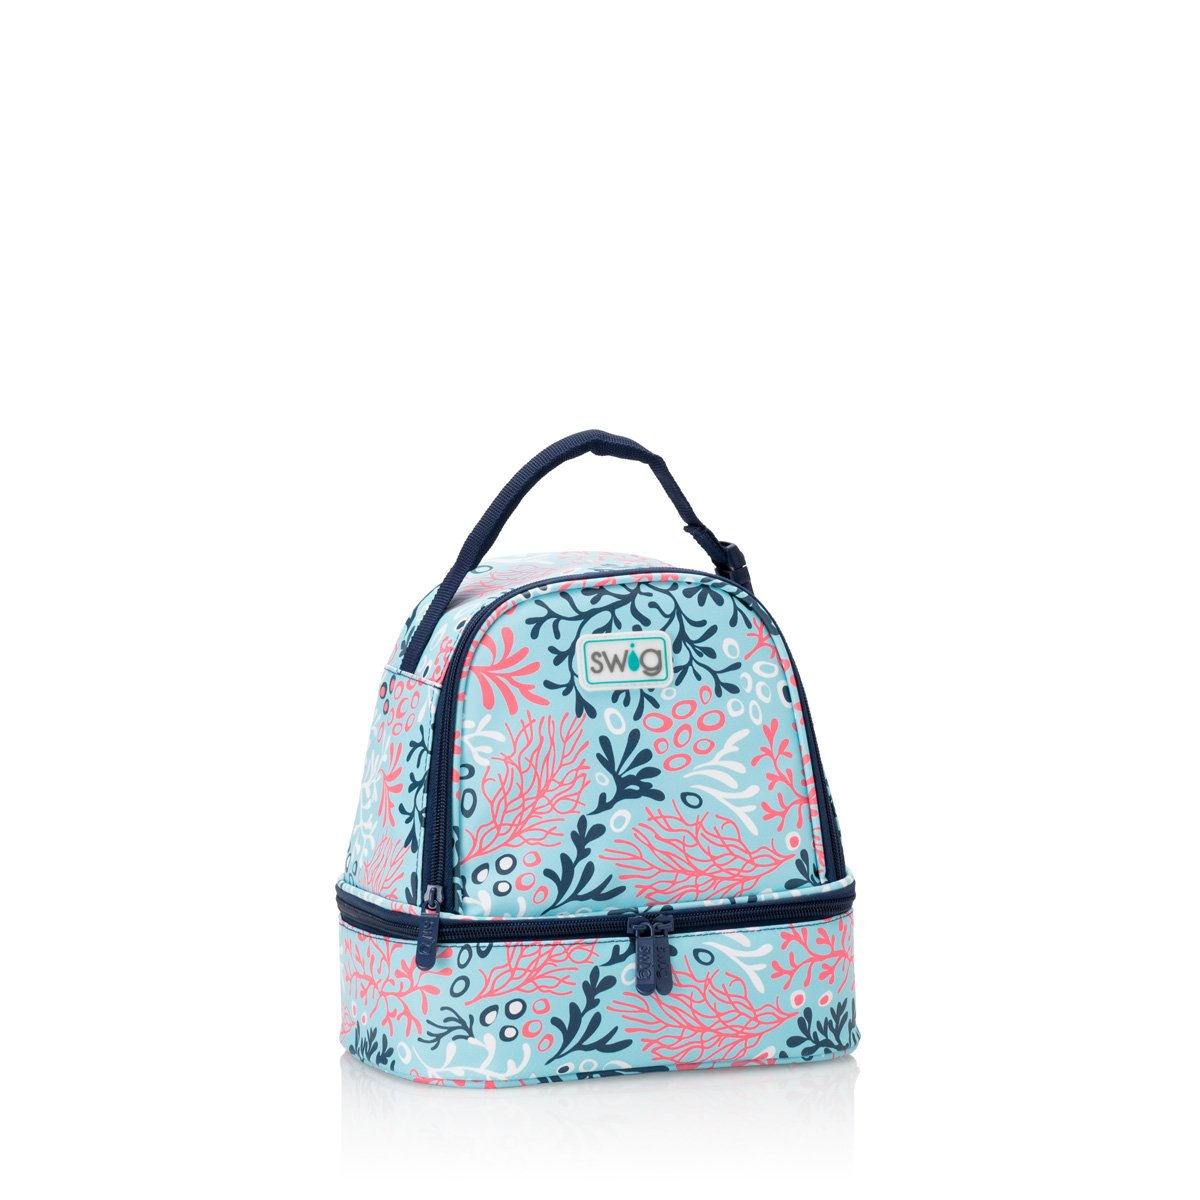 Coral Me Crazy Zippi Lunch Bag